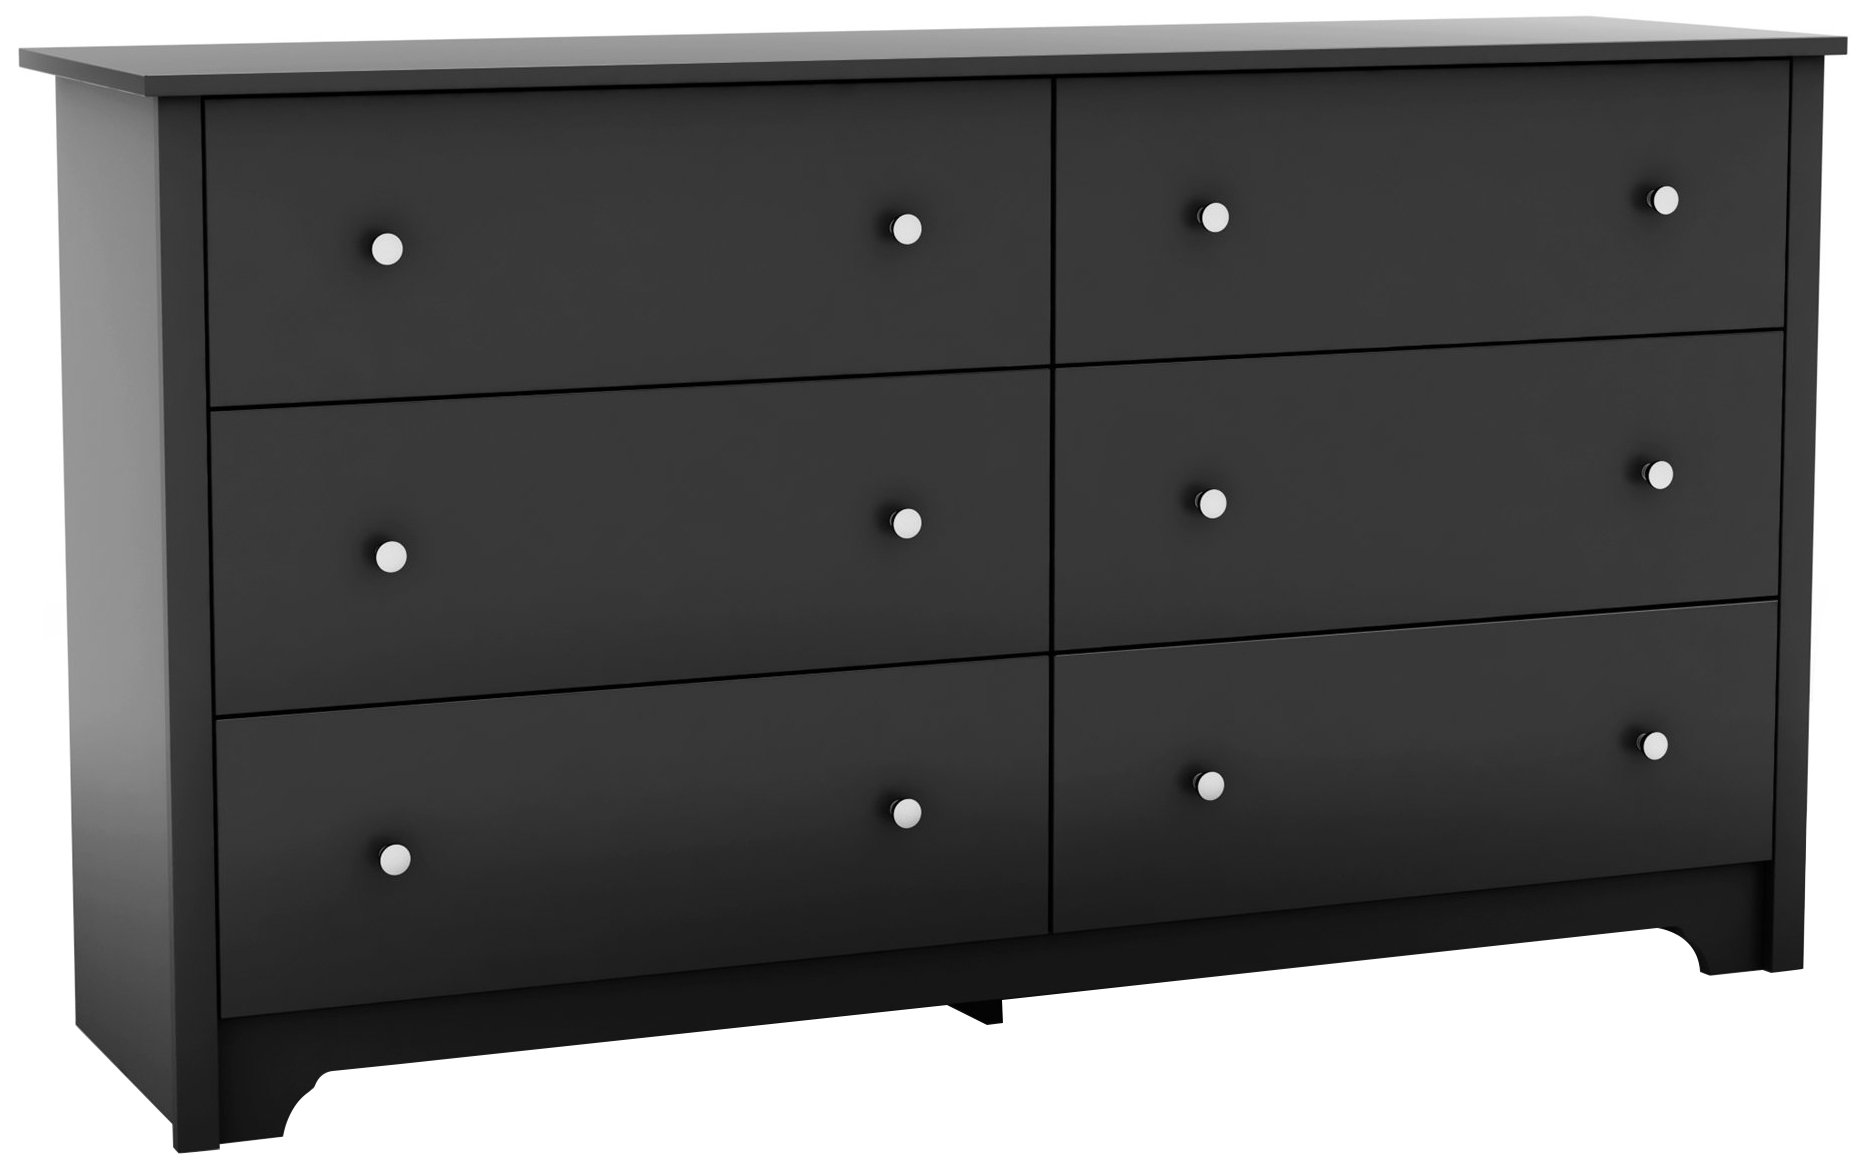 South Shore Vito Collection 6-Drawer Double Dresser, Black with Matte Nickel Handles